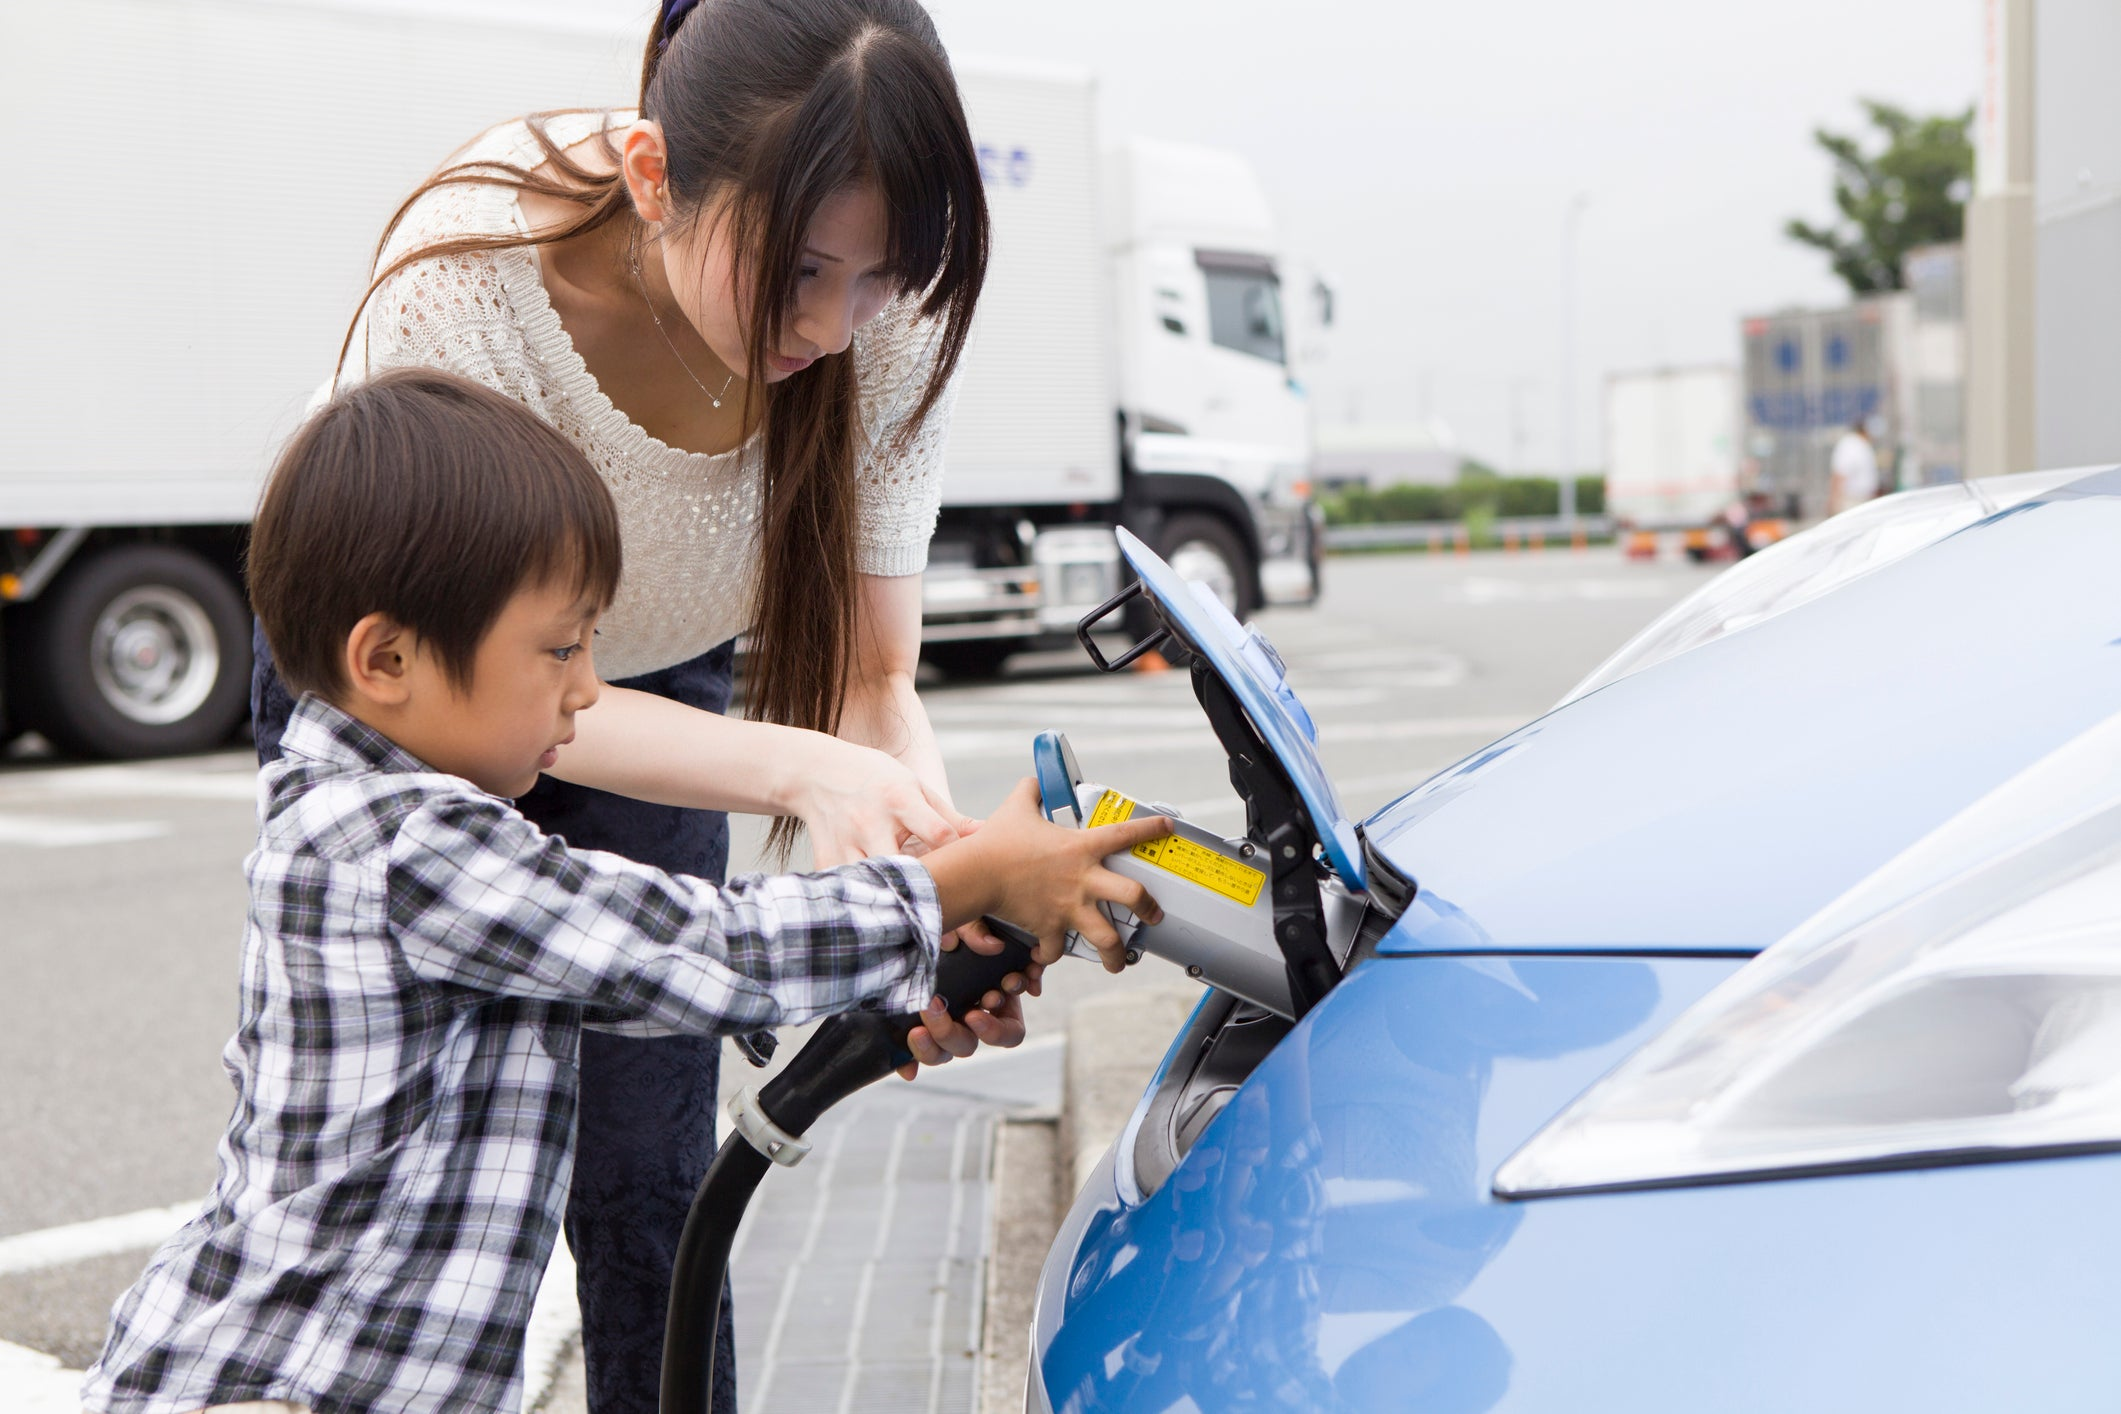 Is Now the Time to Buy Electric Vehicle Stocks?